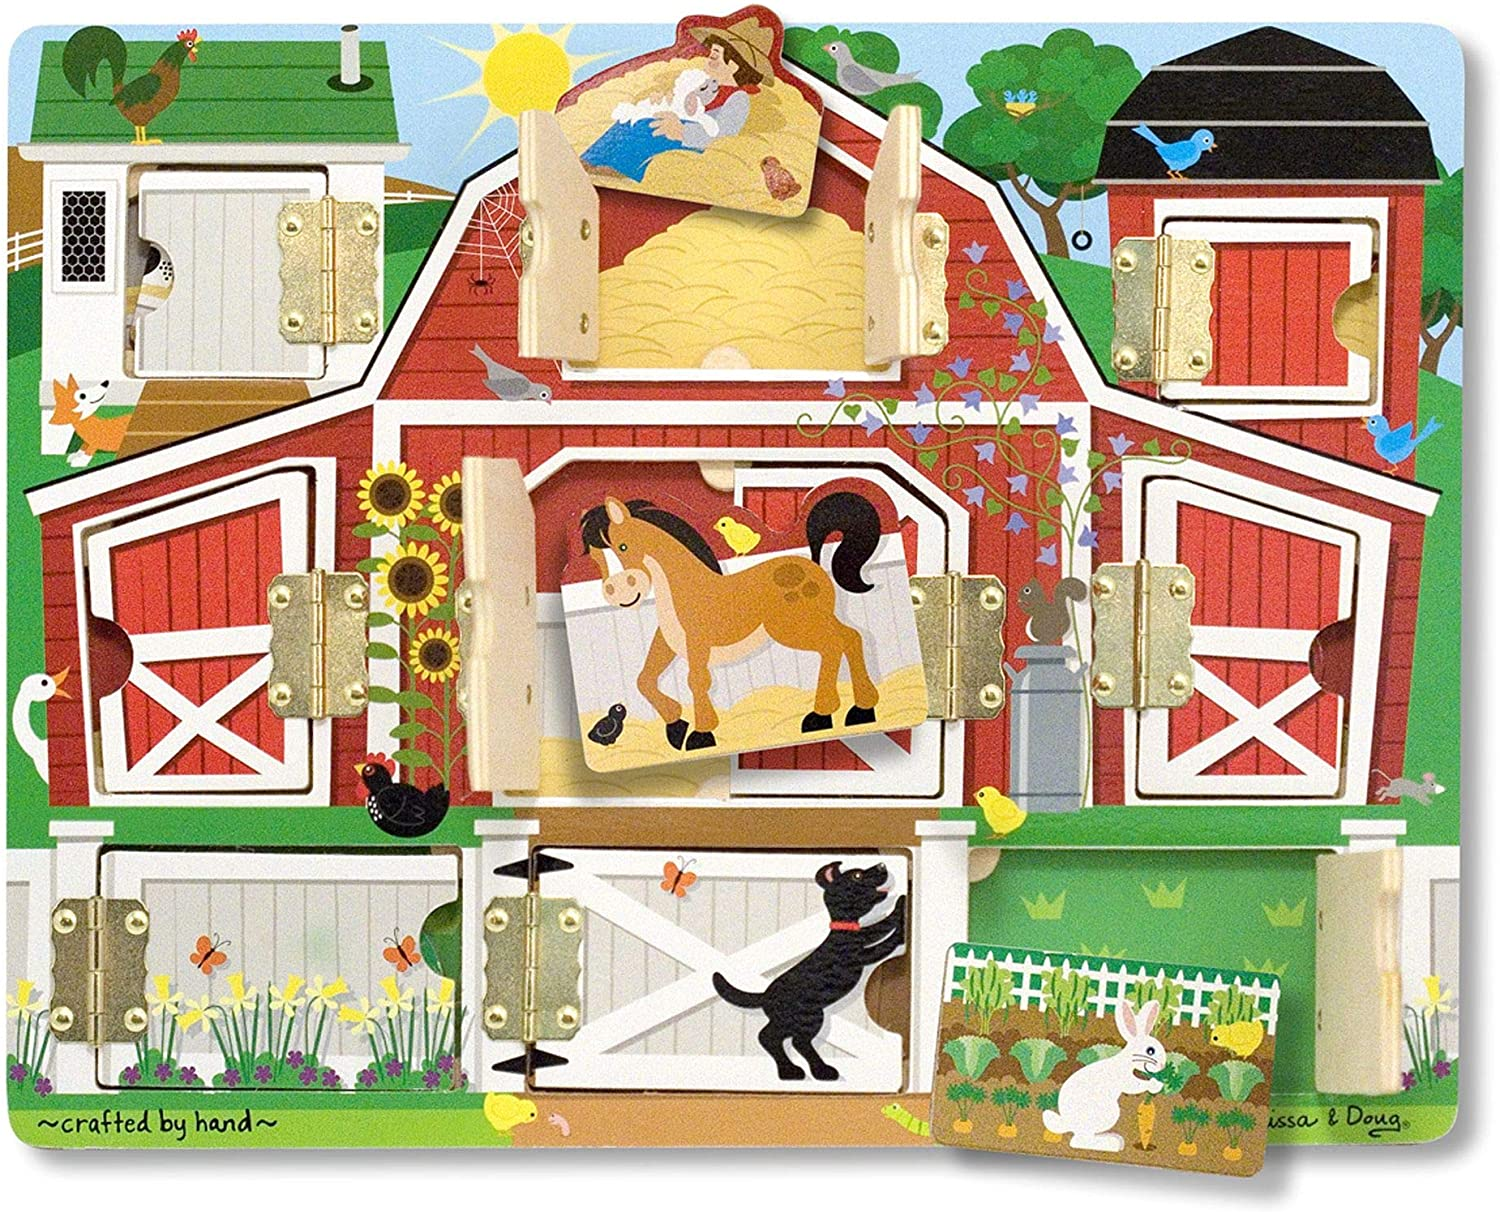 Top 10 Best Farm Animal Toys For Toddlers (2020 Reviews & Buying Guide) 6